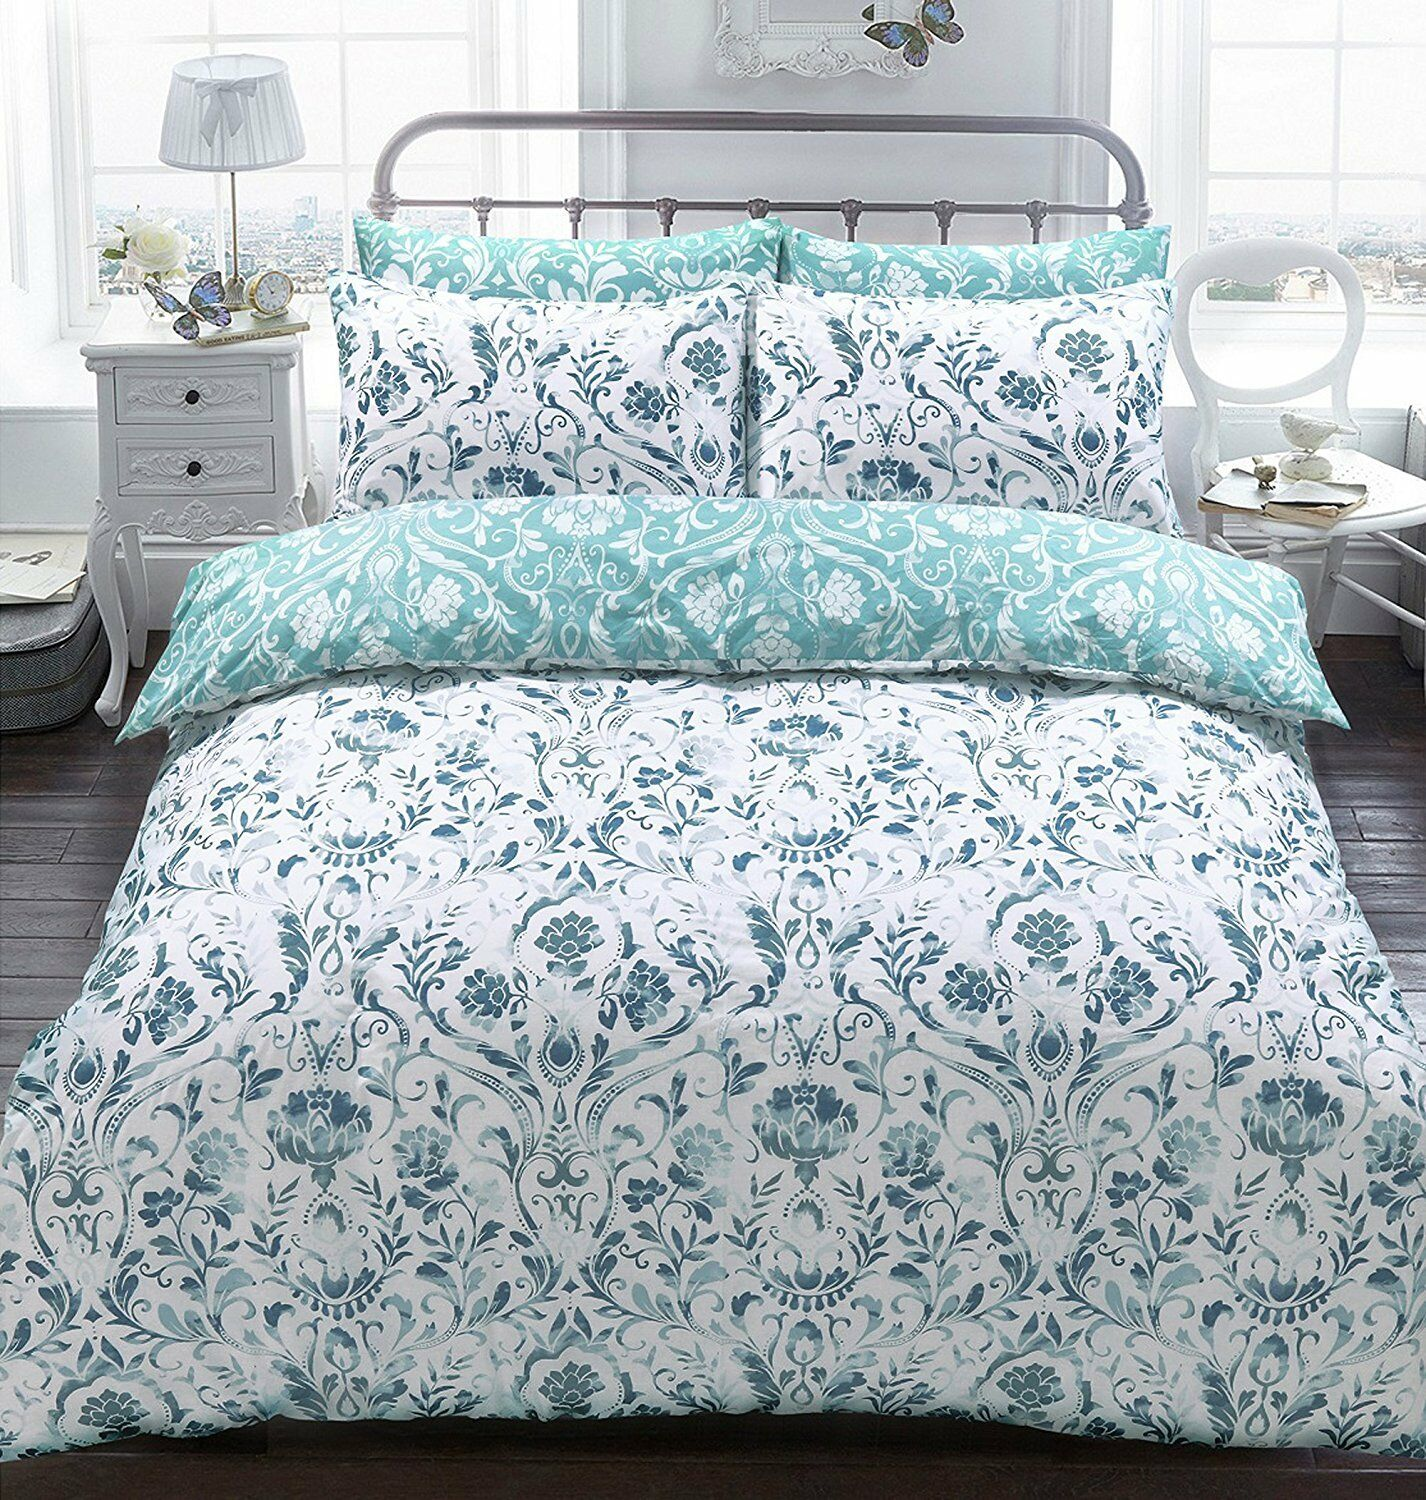 Luxury Damask Teal Duvet Quilt Cover Bedding Set Pillowcases Fit Double Size Bed